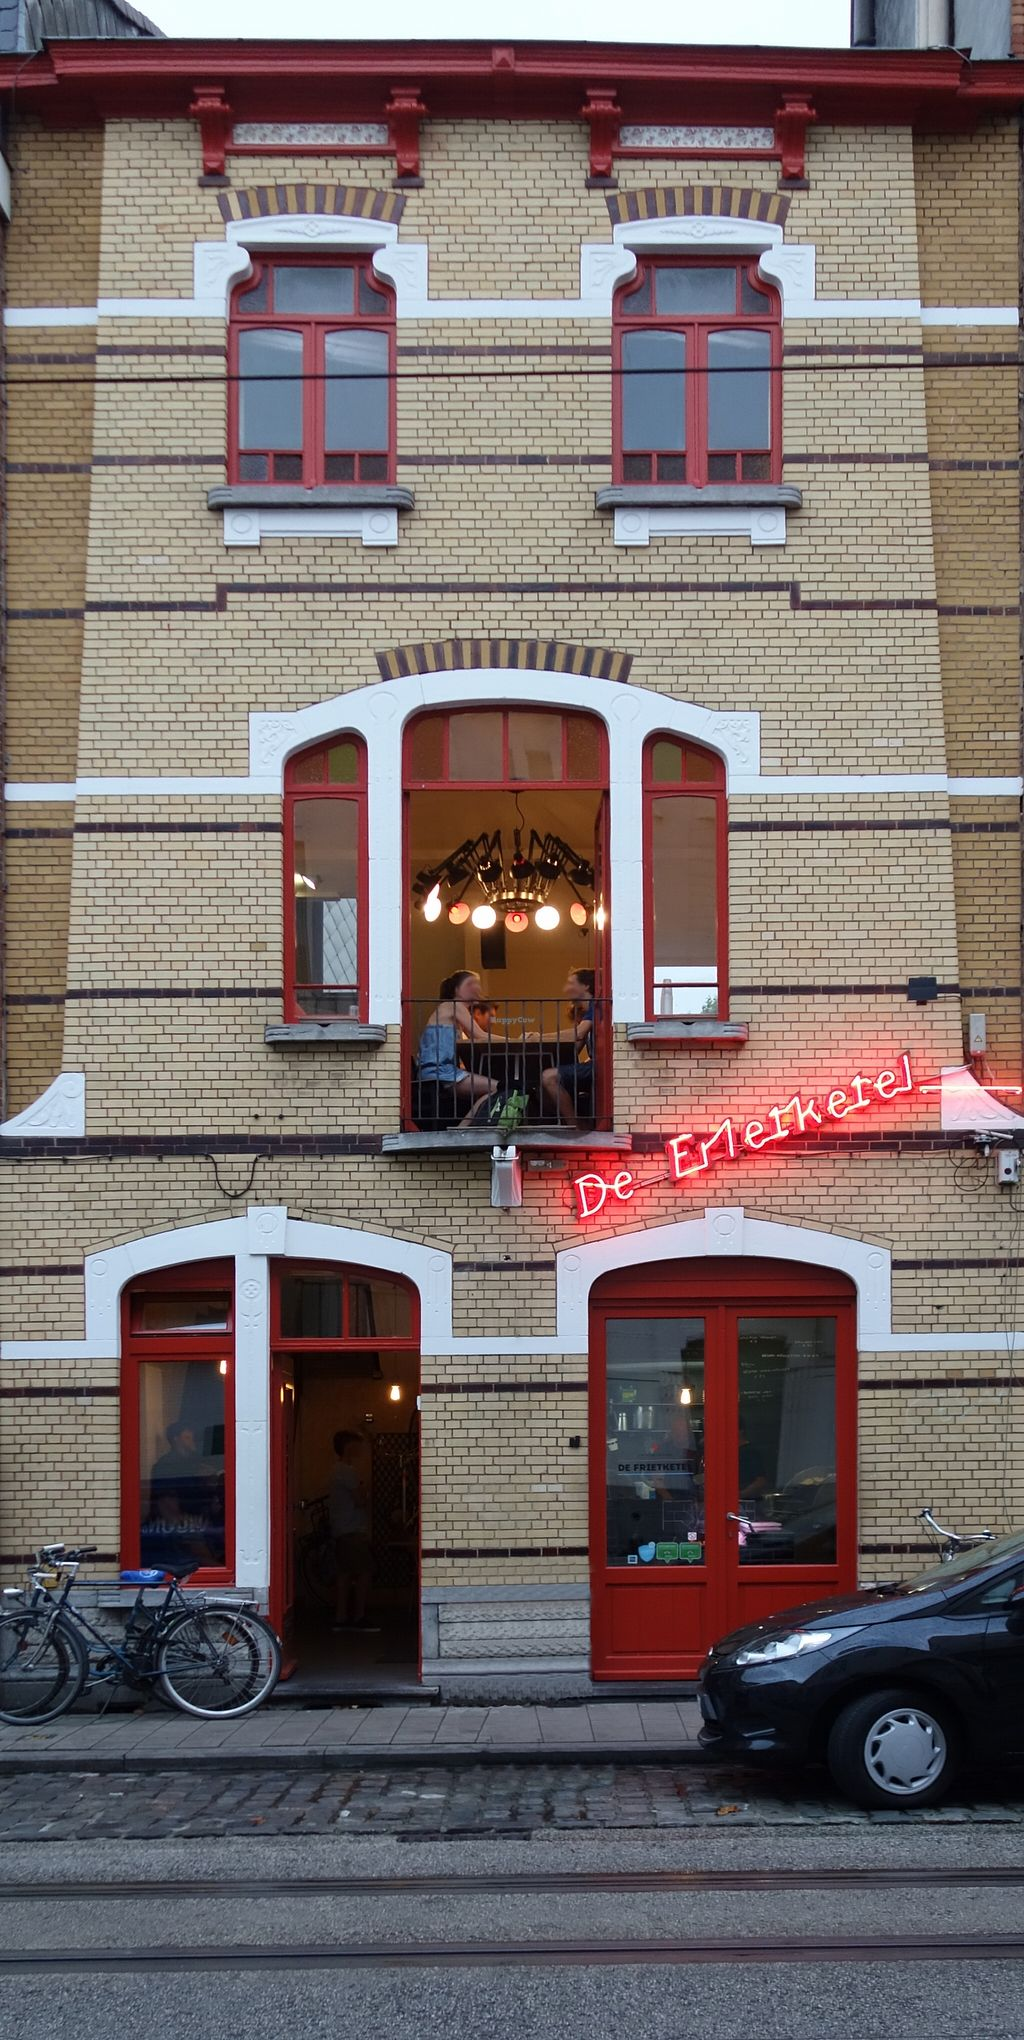 """Photo of De Frietketel  by <a href=""""/members/profile/DusselDaene"""">DusselDaene</a> <br/>De Frietketel <br/> August 31, 2015  - <a href='/contact/abuse/image/10878/115966'>Report</a>"""